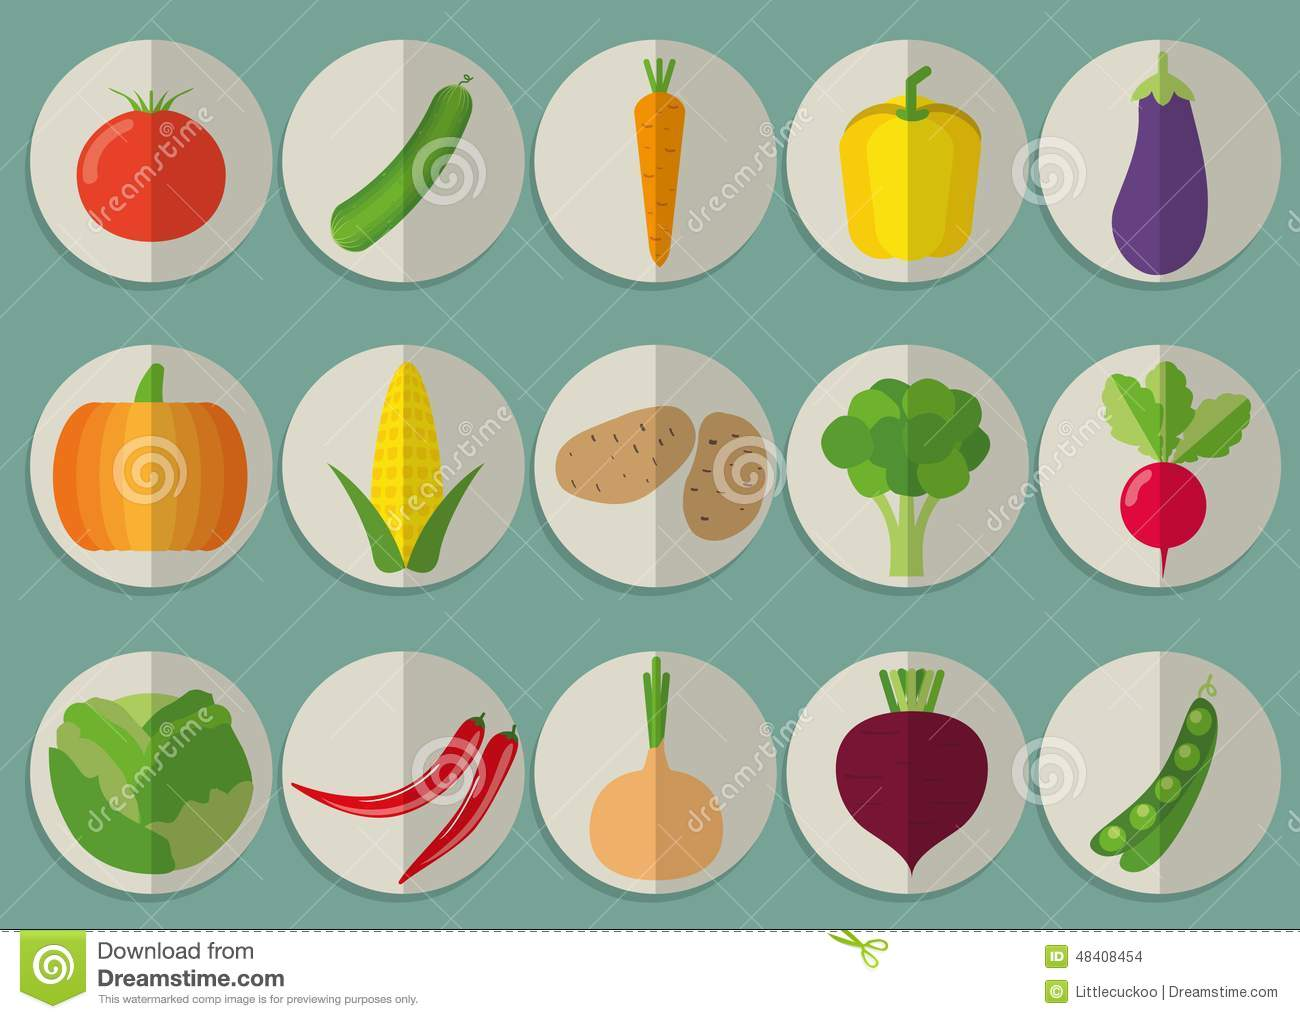 vegetable icon set the image of vegetables symbol cartoon